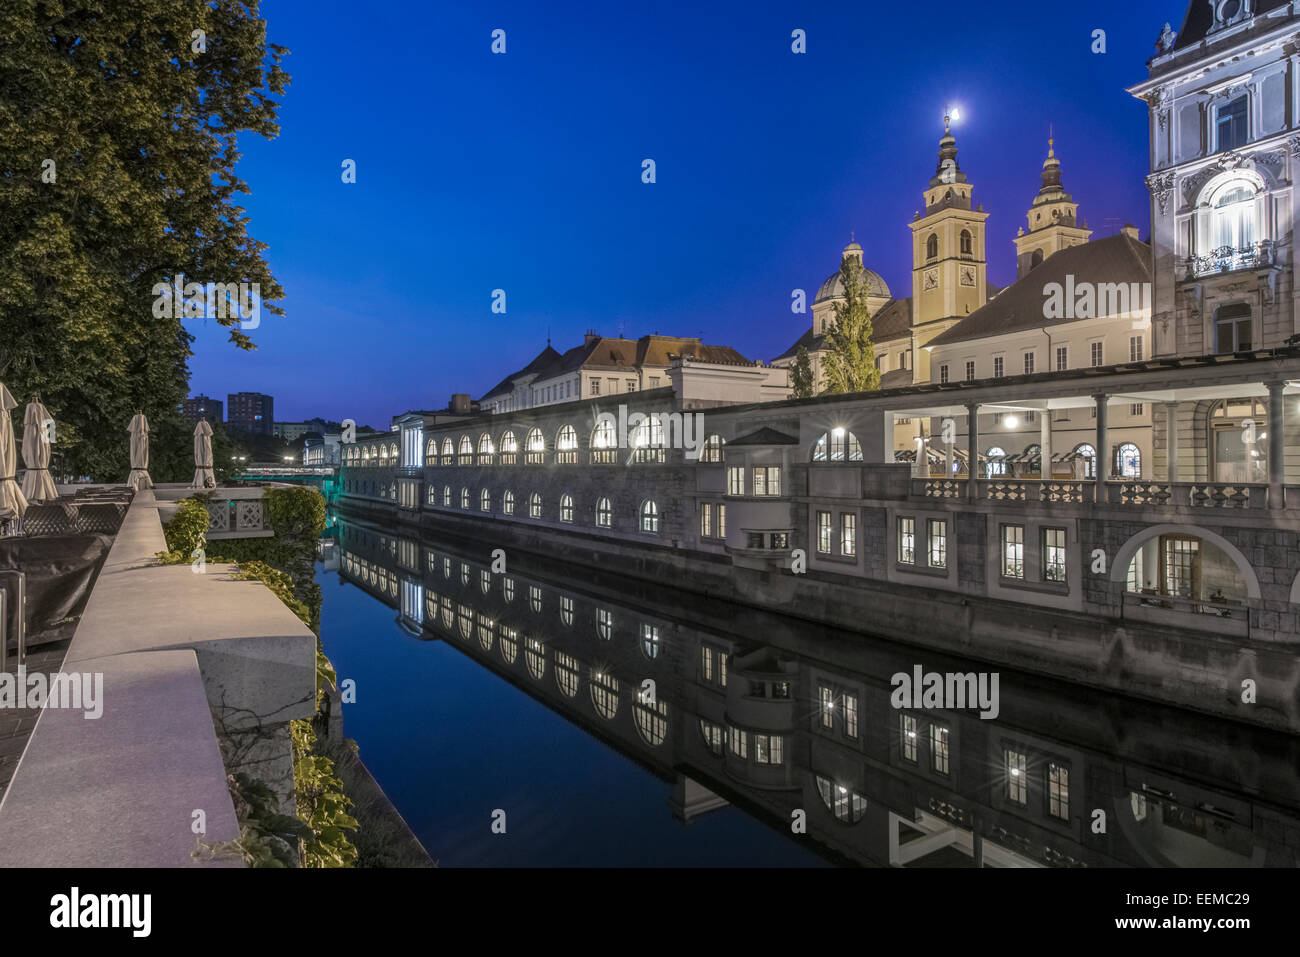 Church and walkways near urban canal, Ljubljana, Central Slovenia, Slovenia - Stock Image